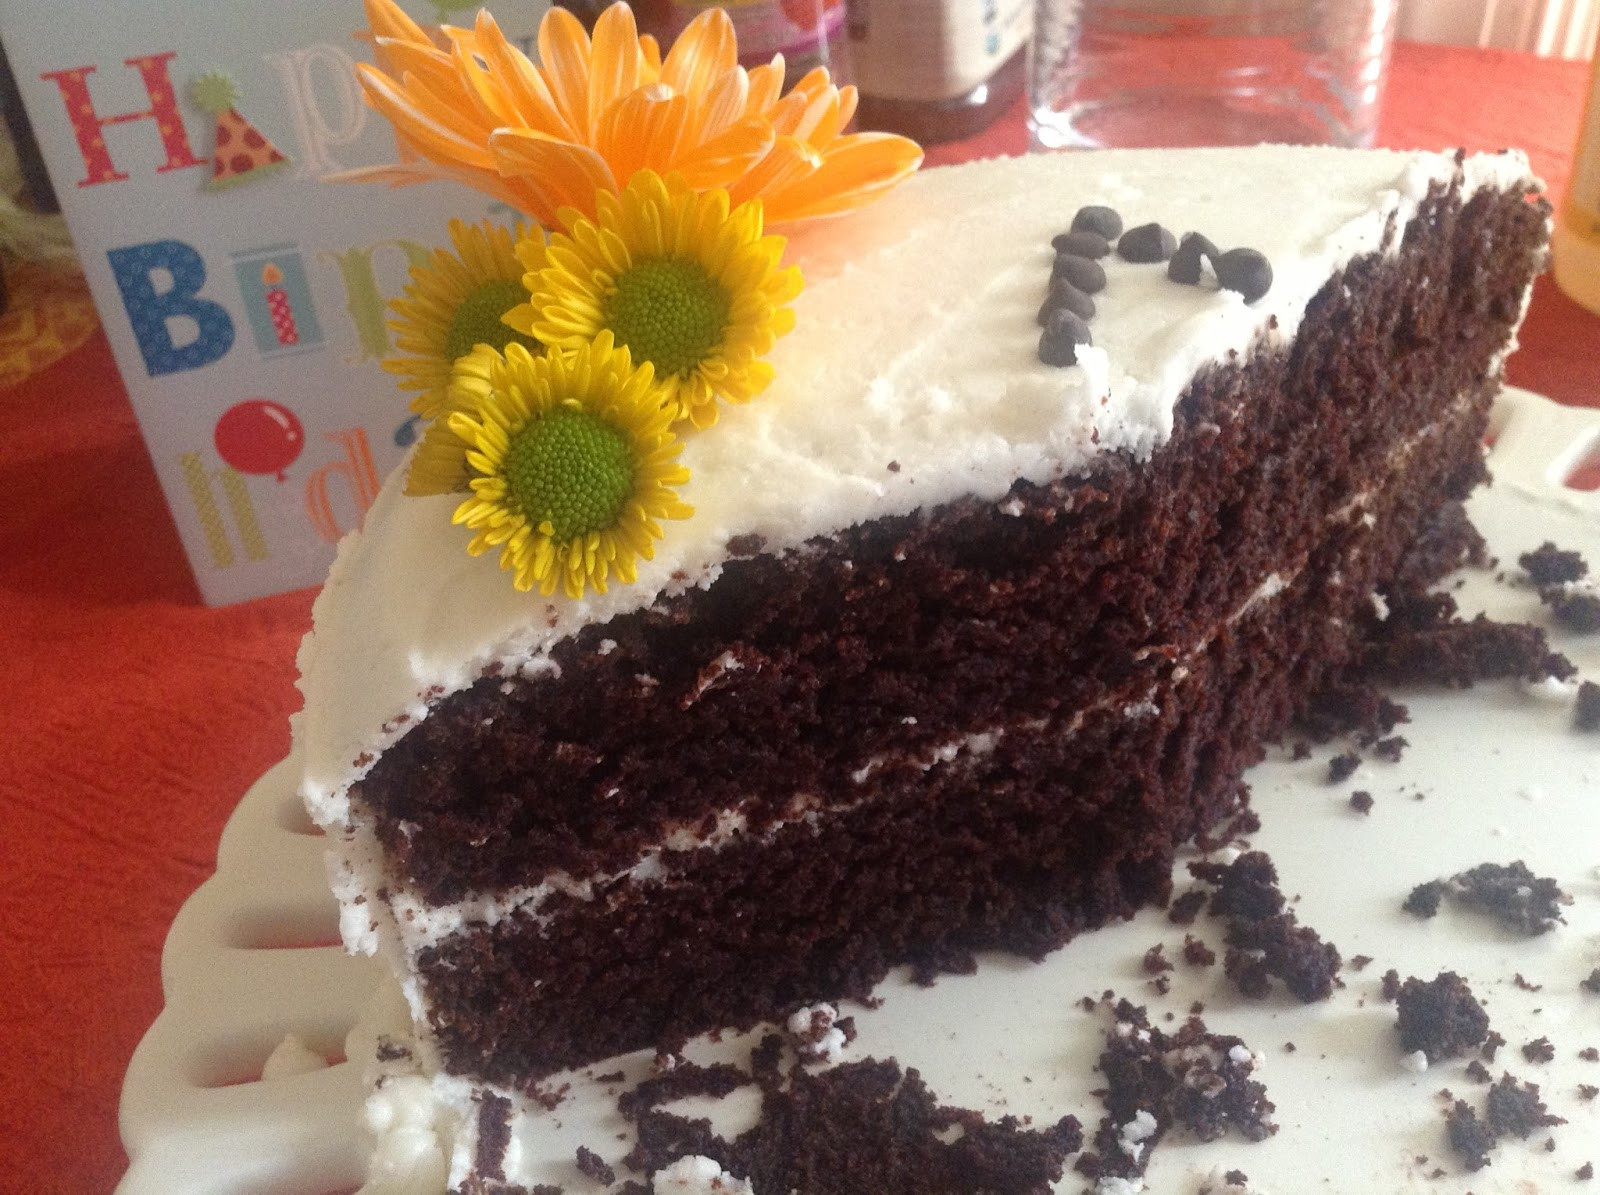 Best ideas about Dairy Free Birthday Cake . Save or Pin Mamacado Healthy First Birthday Cake Dairy free Egg Now.